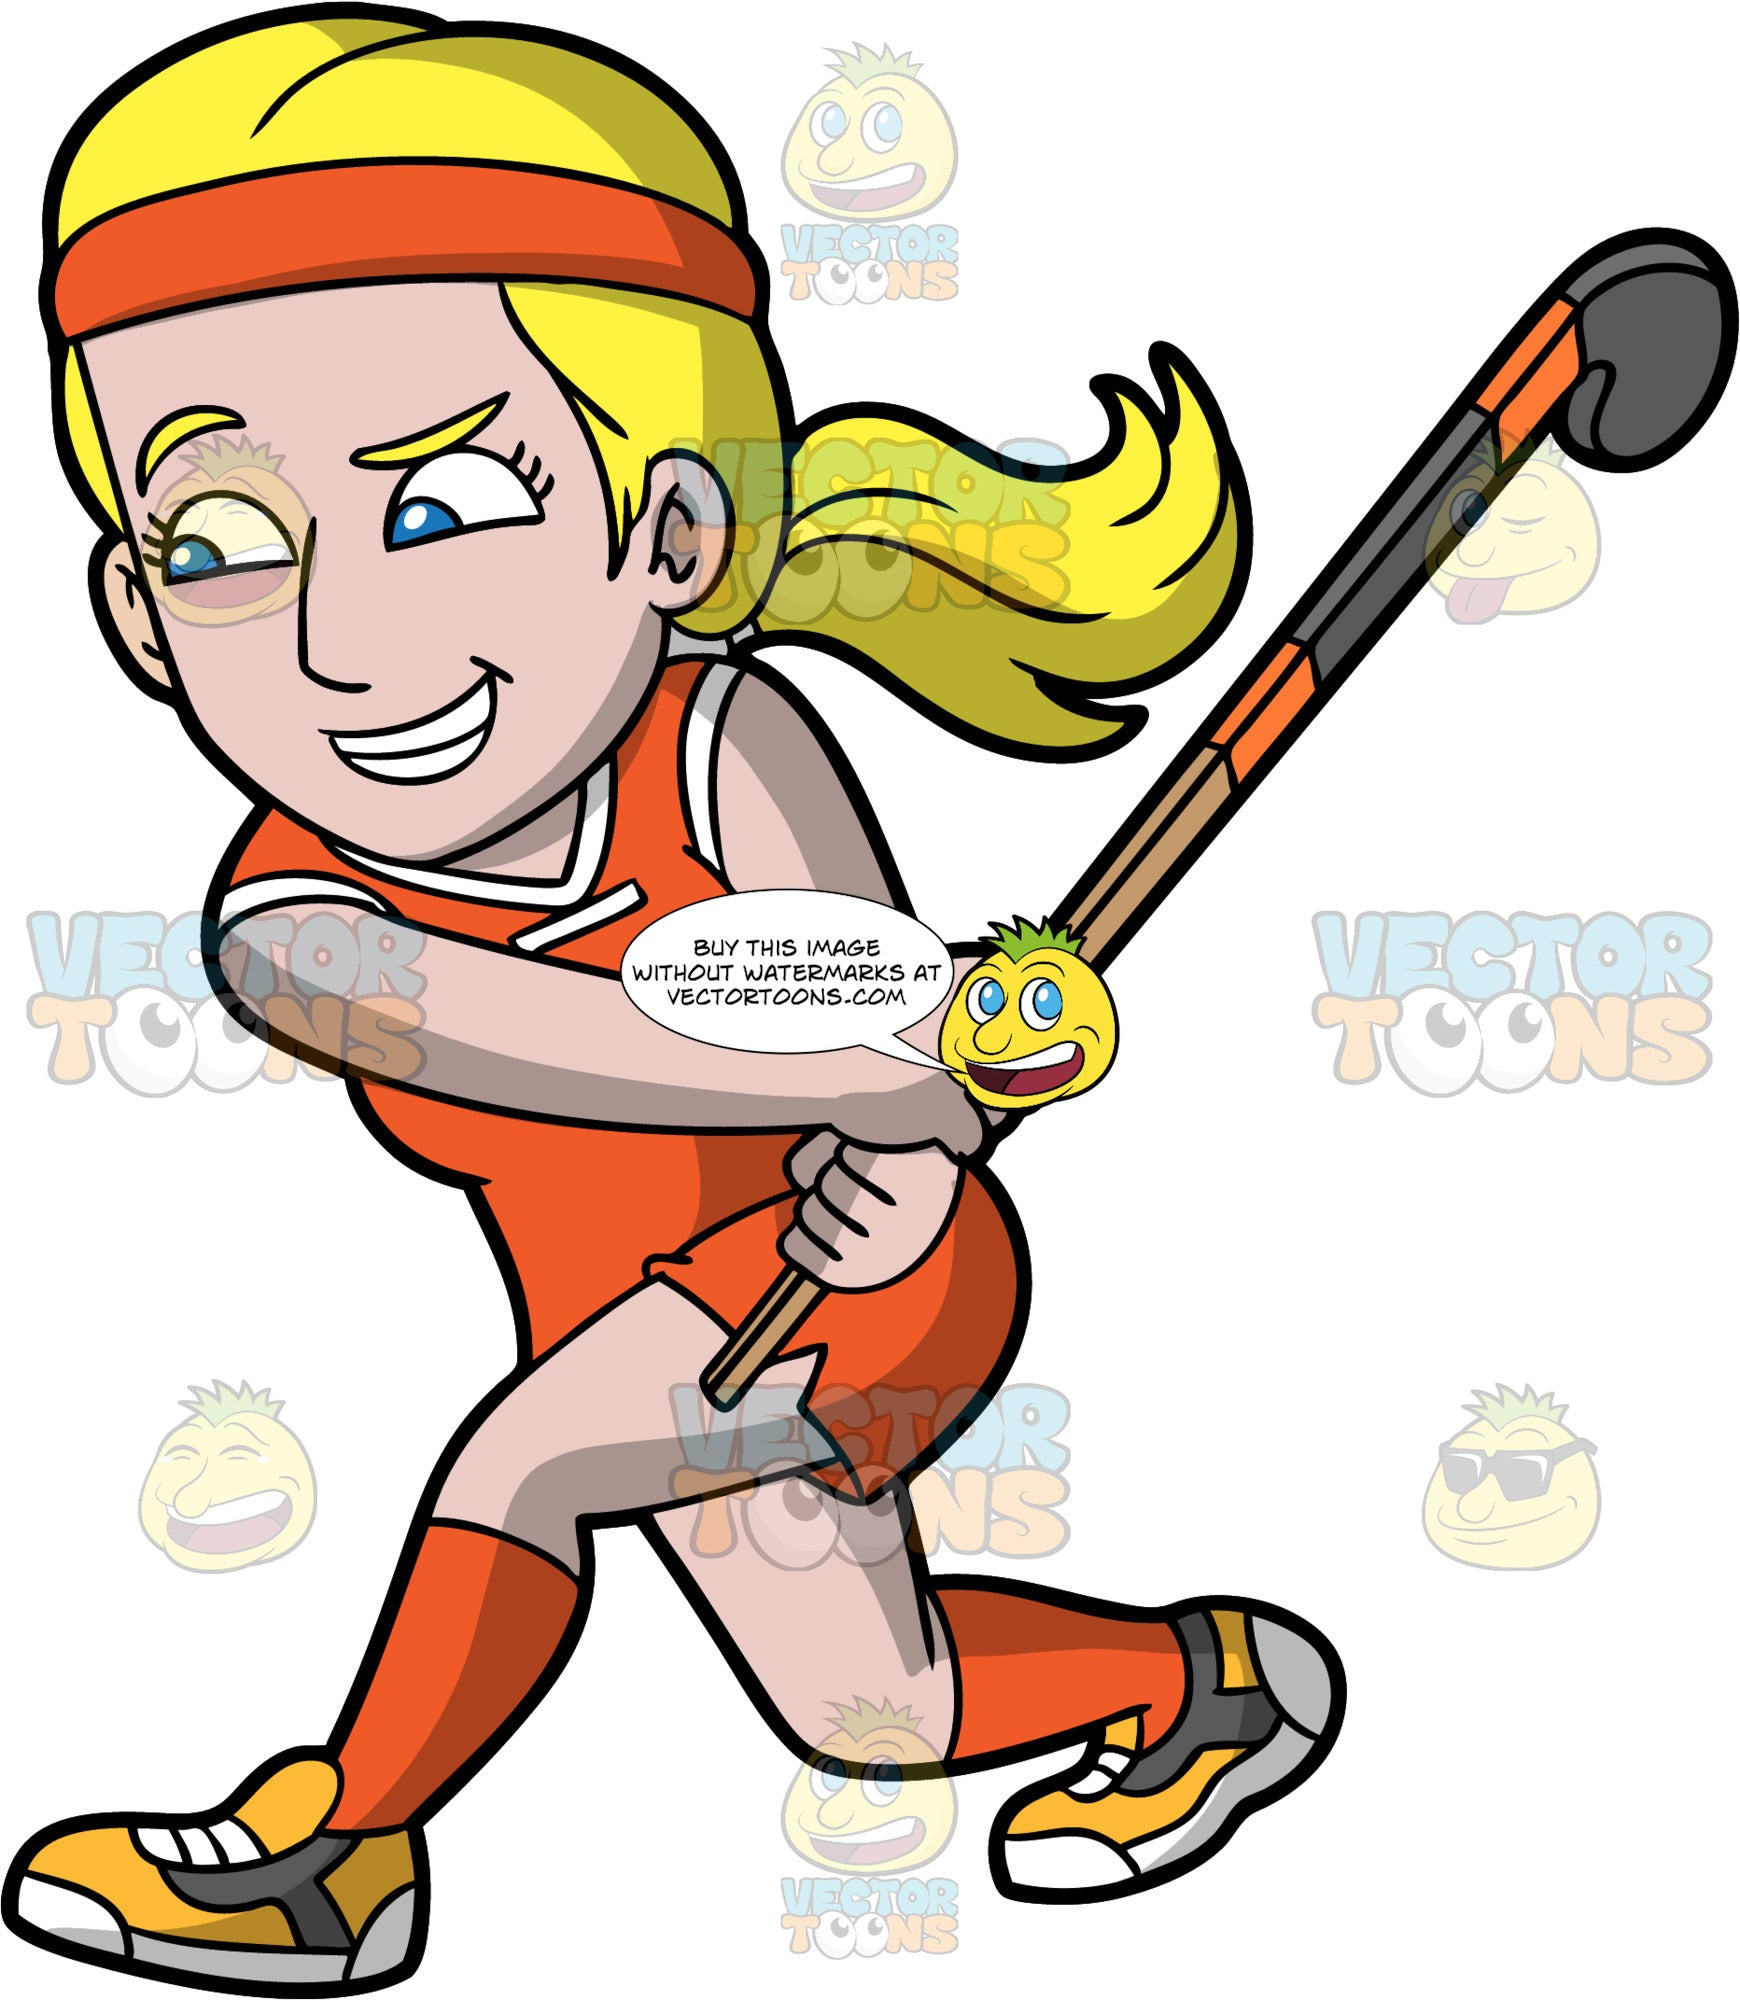 A blonde woman preparing to hit a field hockey ball. A blonde woman with blue eyes, wearing orange shorts, an orange shirt, orange socks, yellow shoes and an orange headband, holds her field hockey stick in the air in preparation for hitting a ball